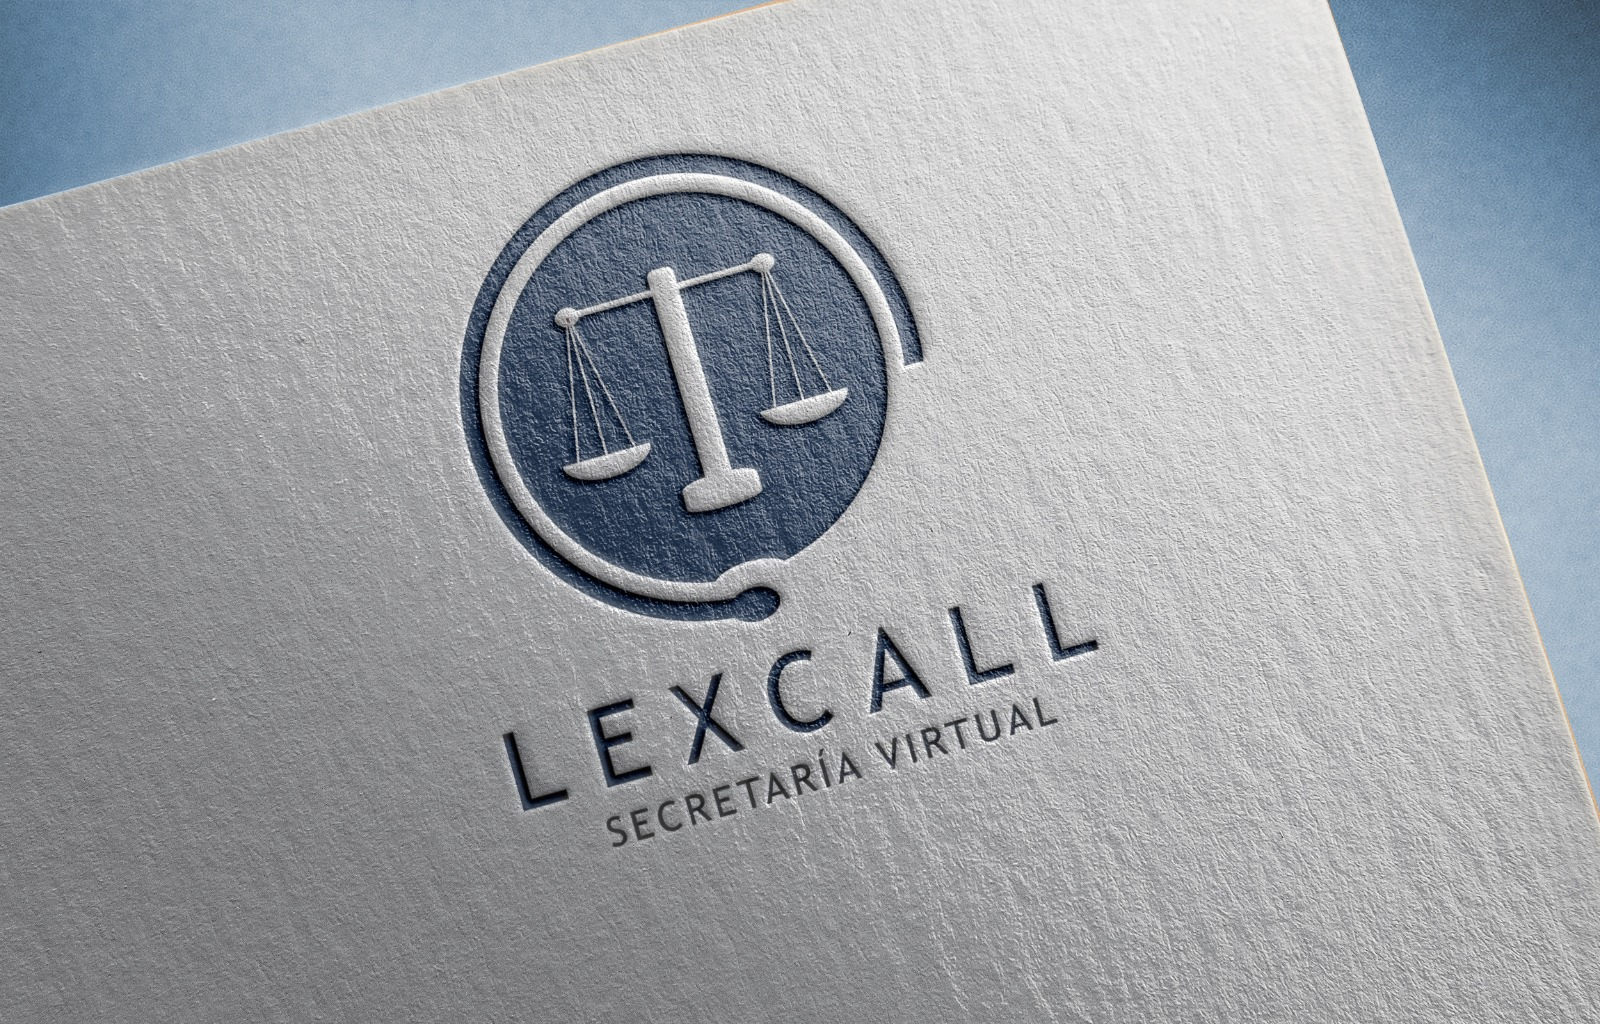 LEXCALL